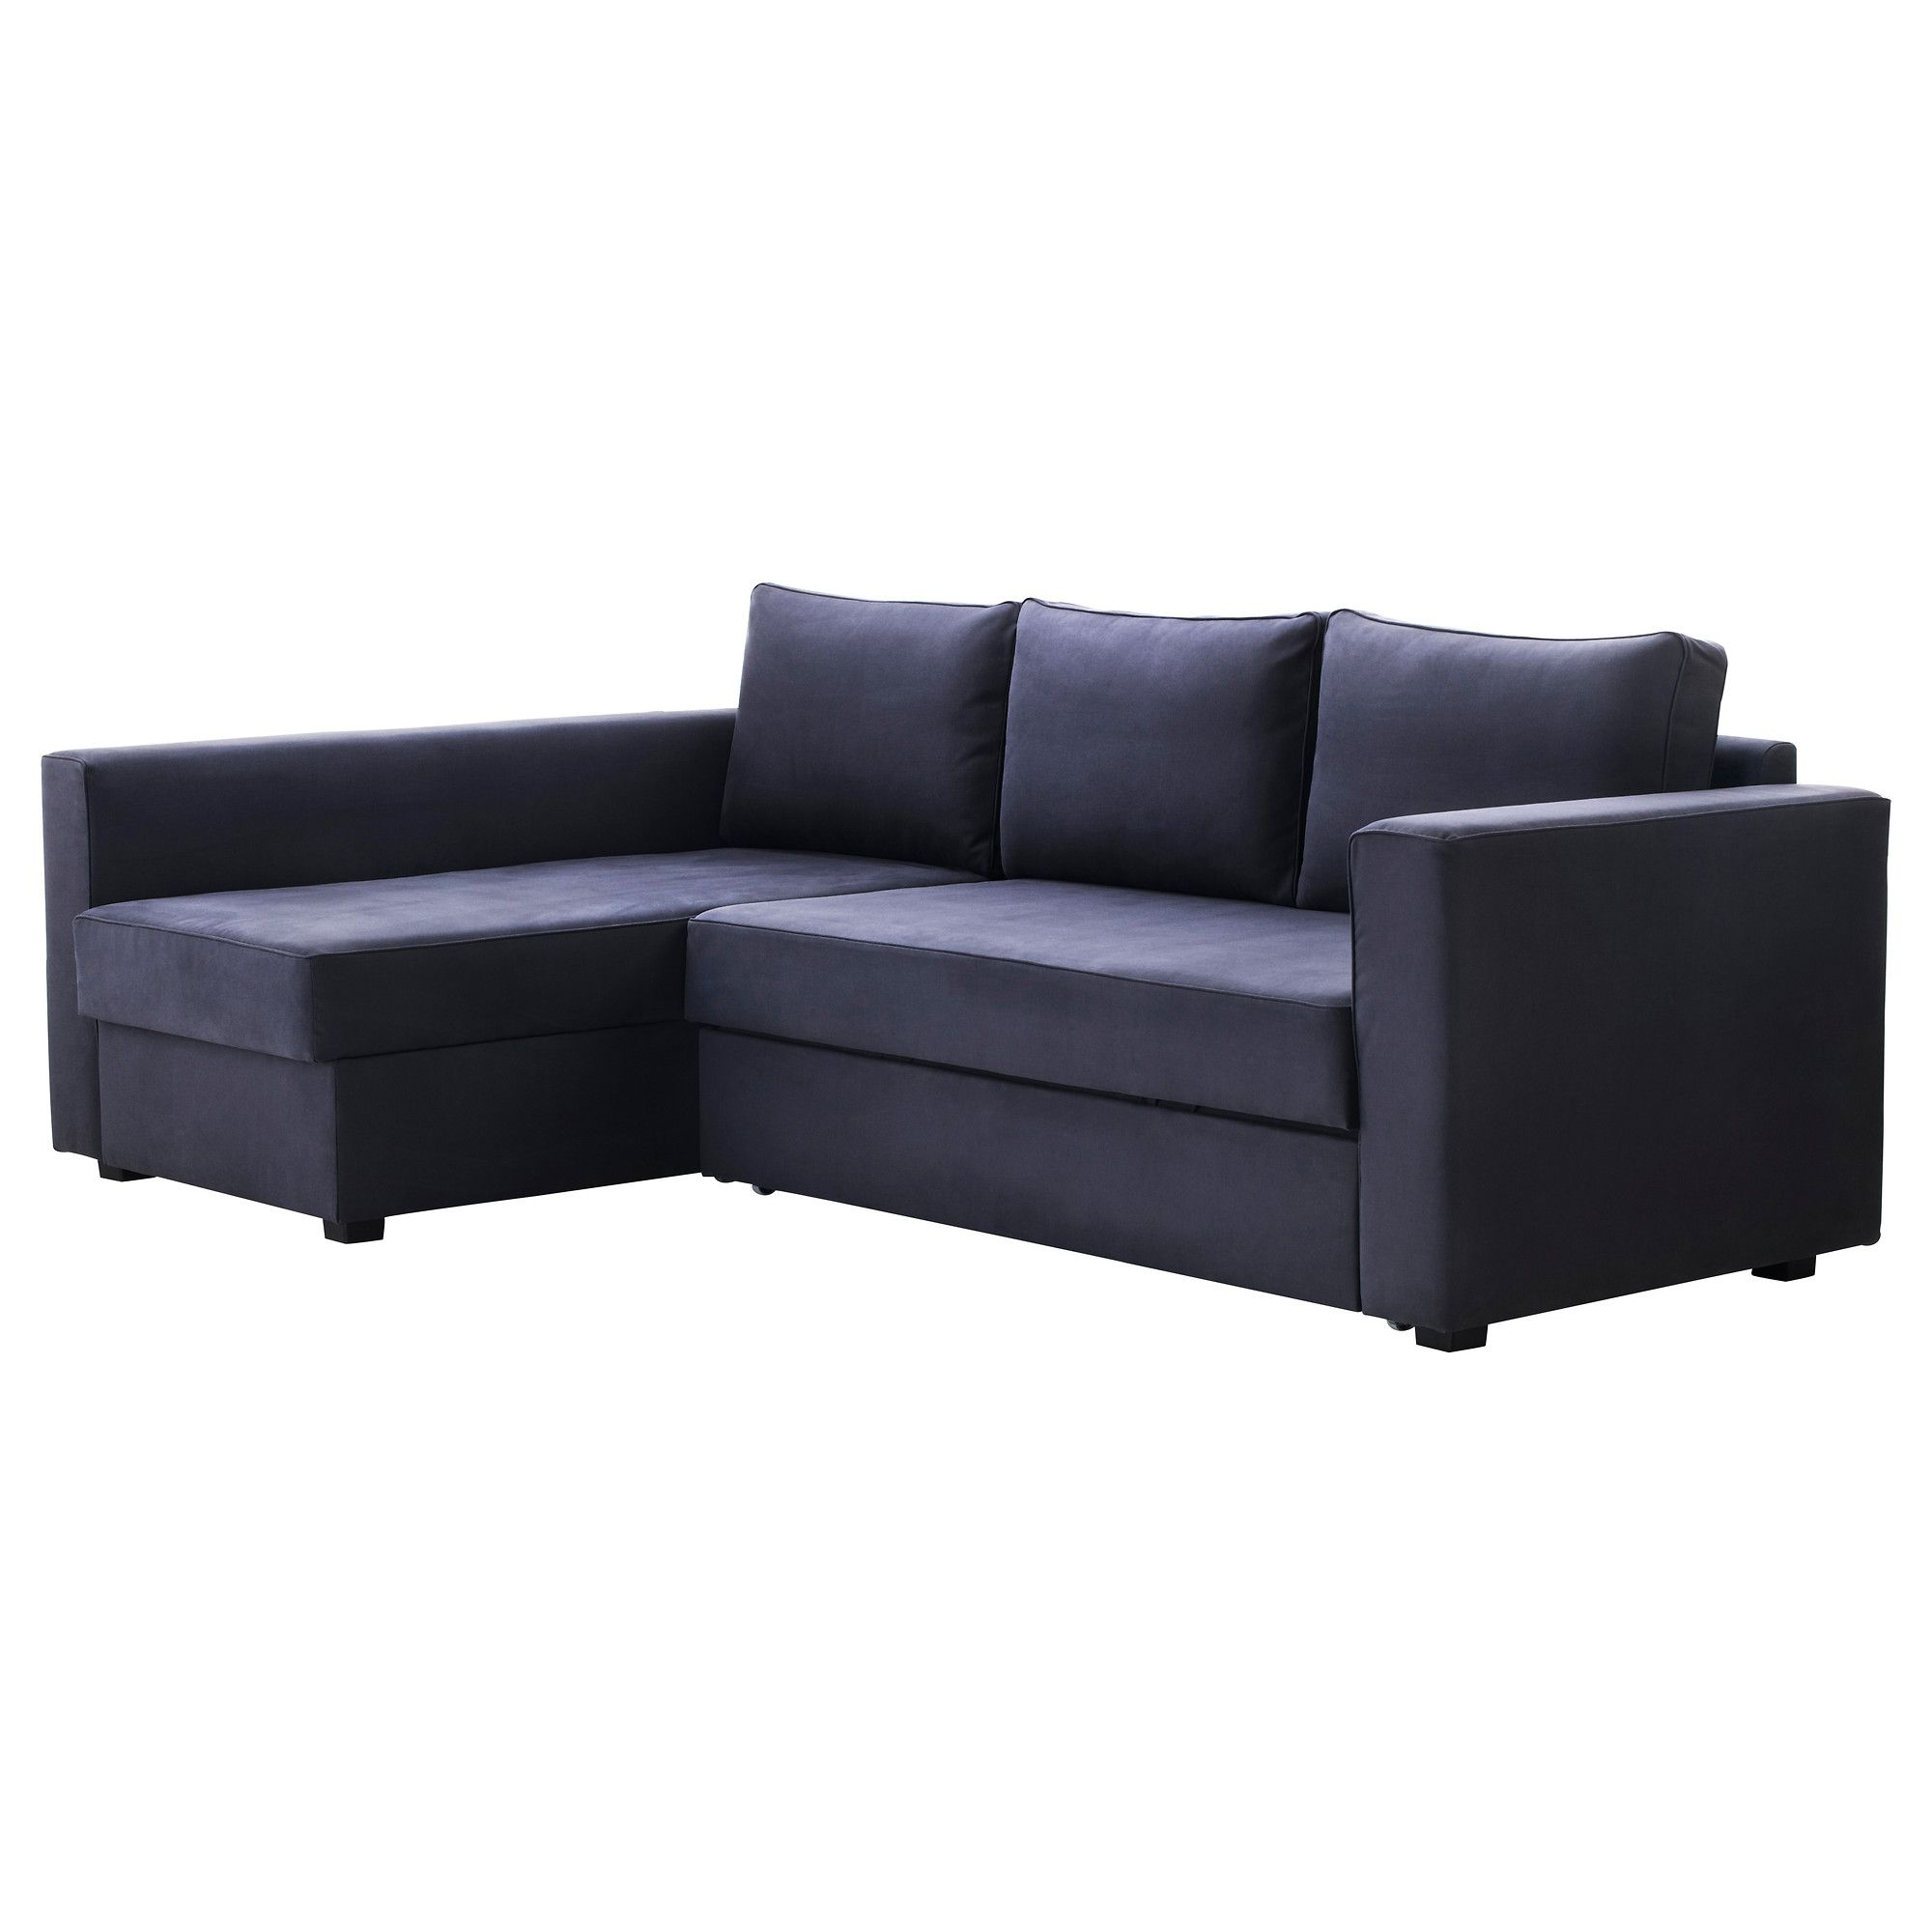 MÅnstad Corner Sofa Bed With Storage Gobo Blue Gray Ikea Genius And Simple Some More